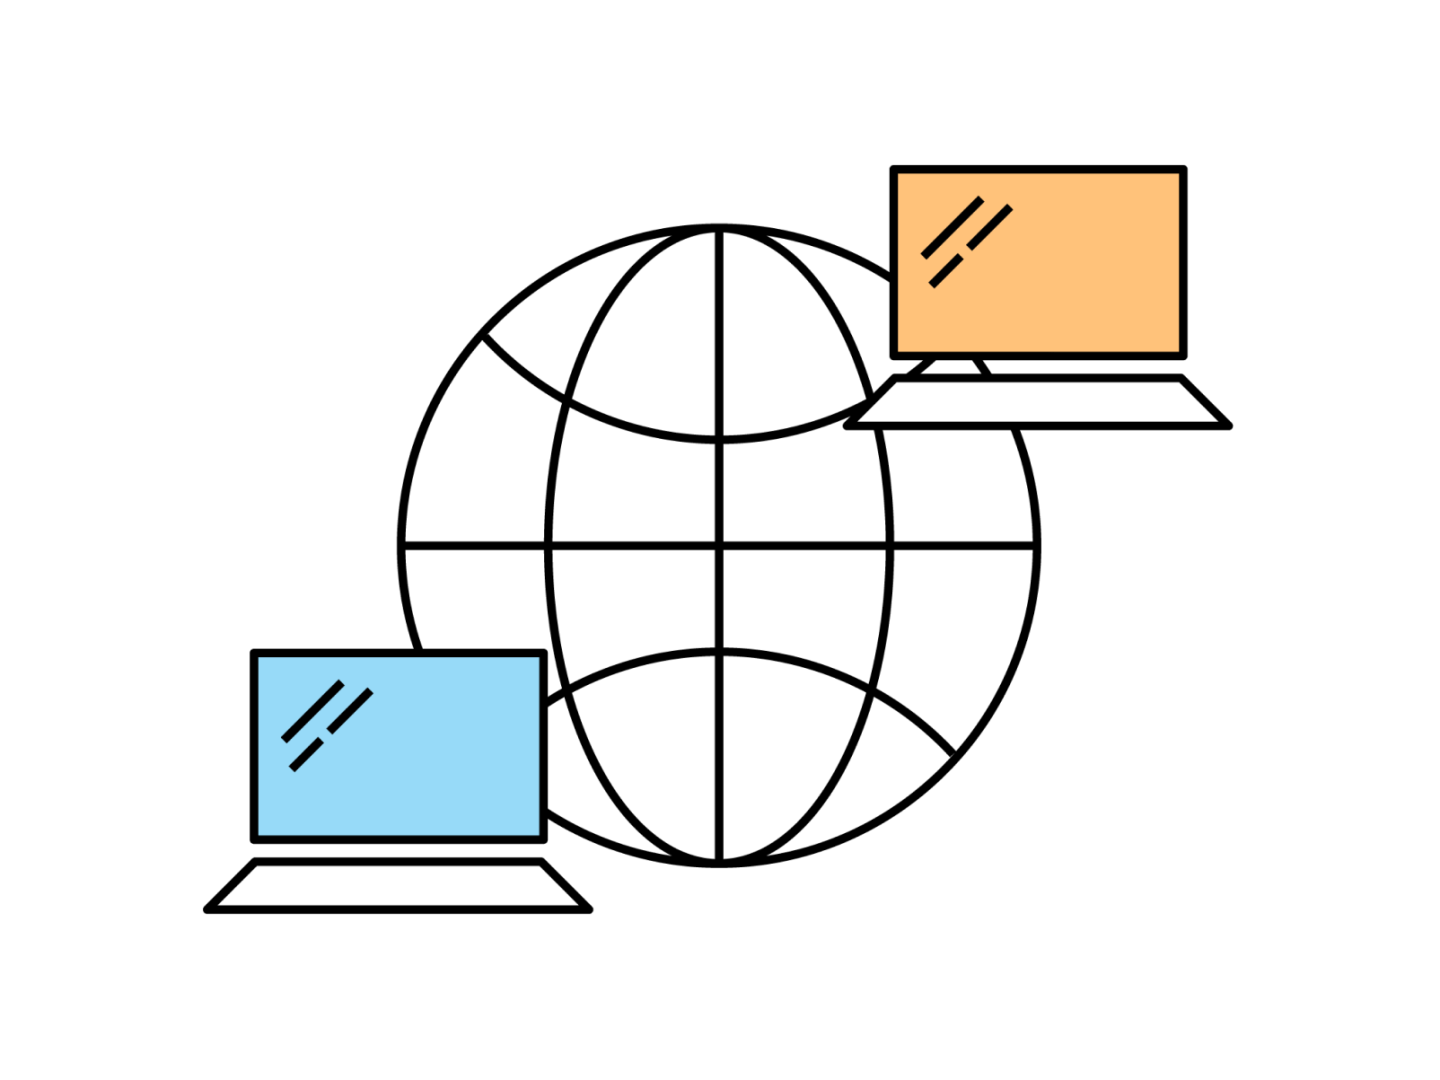 An illustration of a world icon with a computer overlapping it on the top right corner and another computer overlapping on the bottom left corner